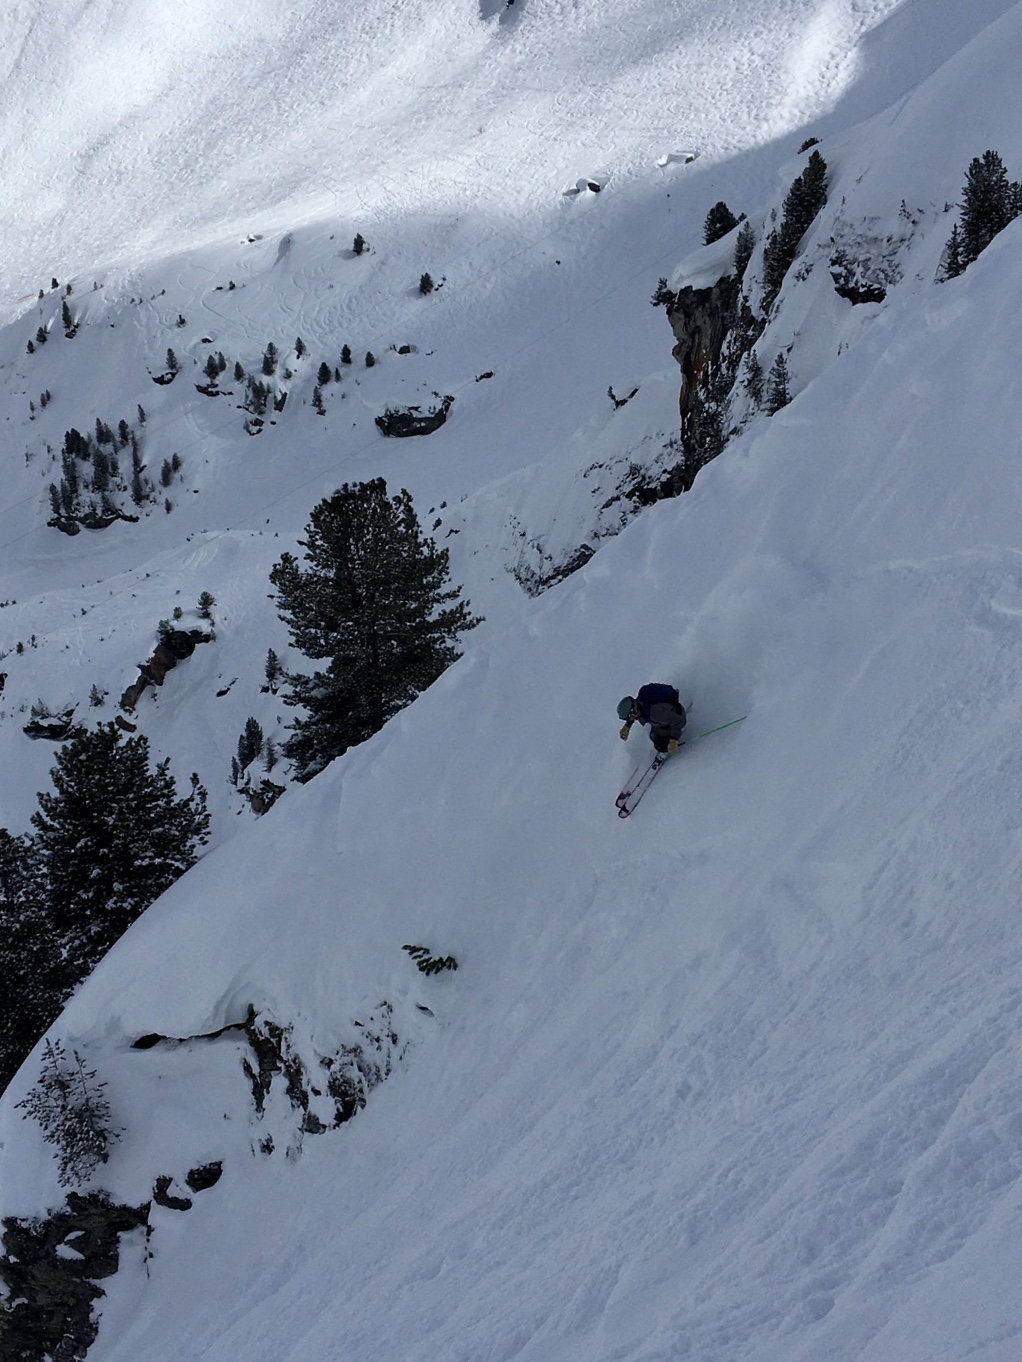 John Mikovits's trip skiing reminds us of the winter months that we are leaving behind us.